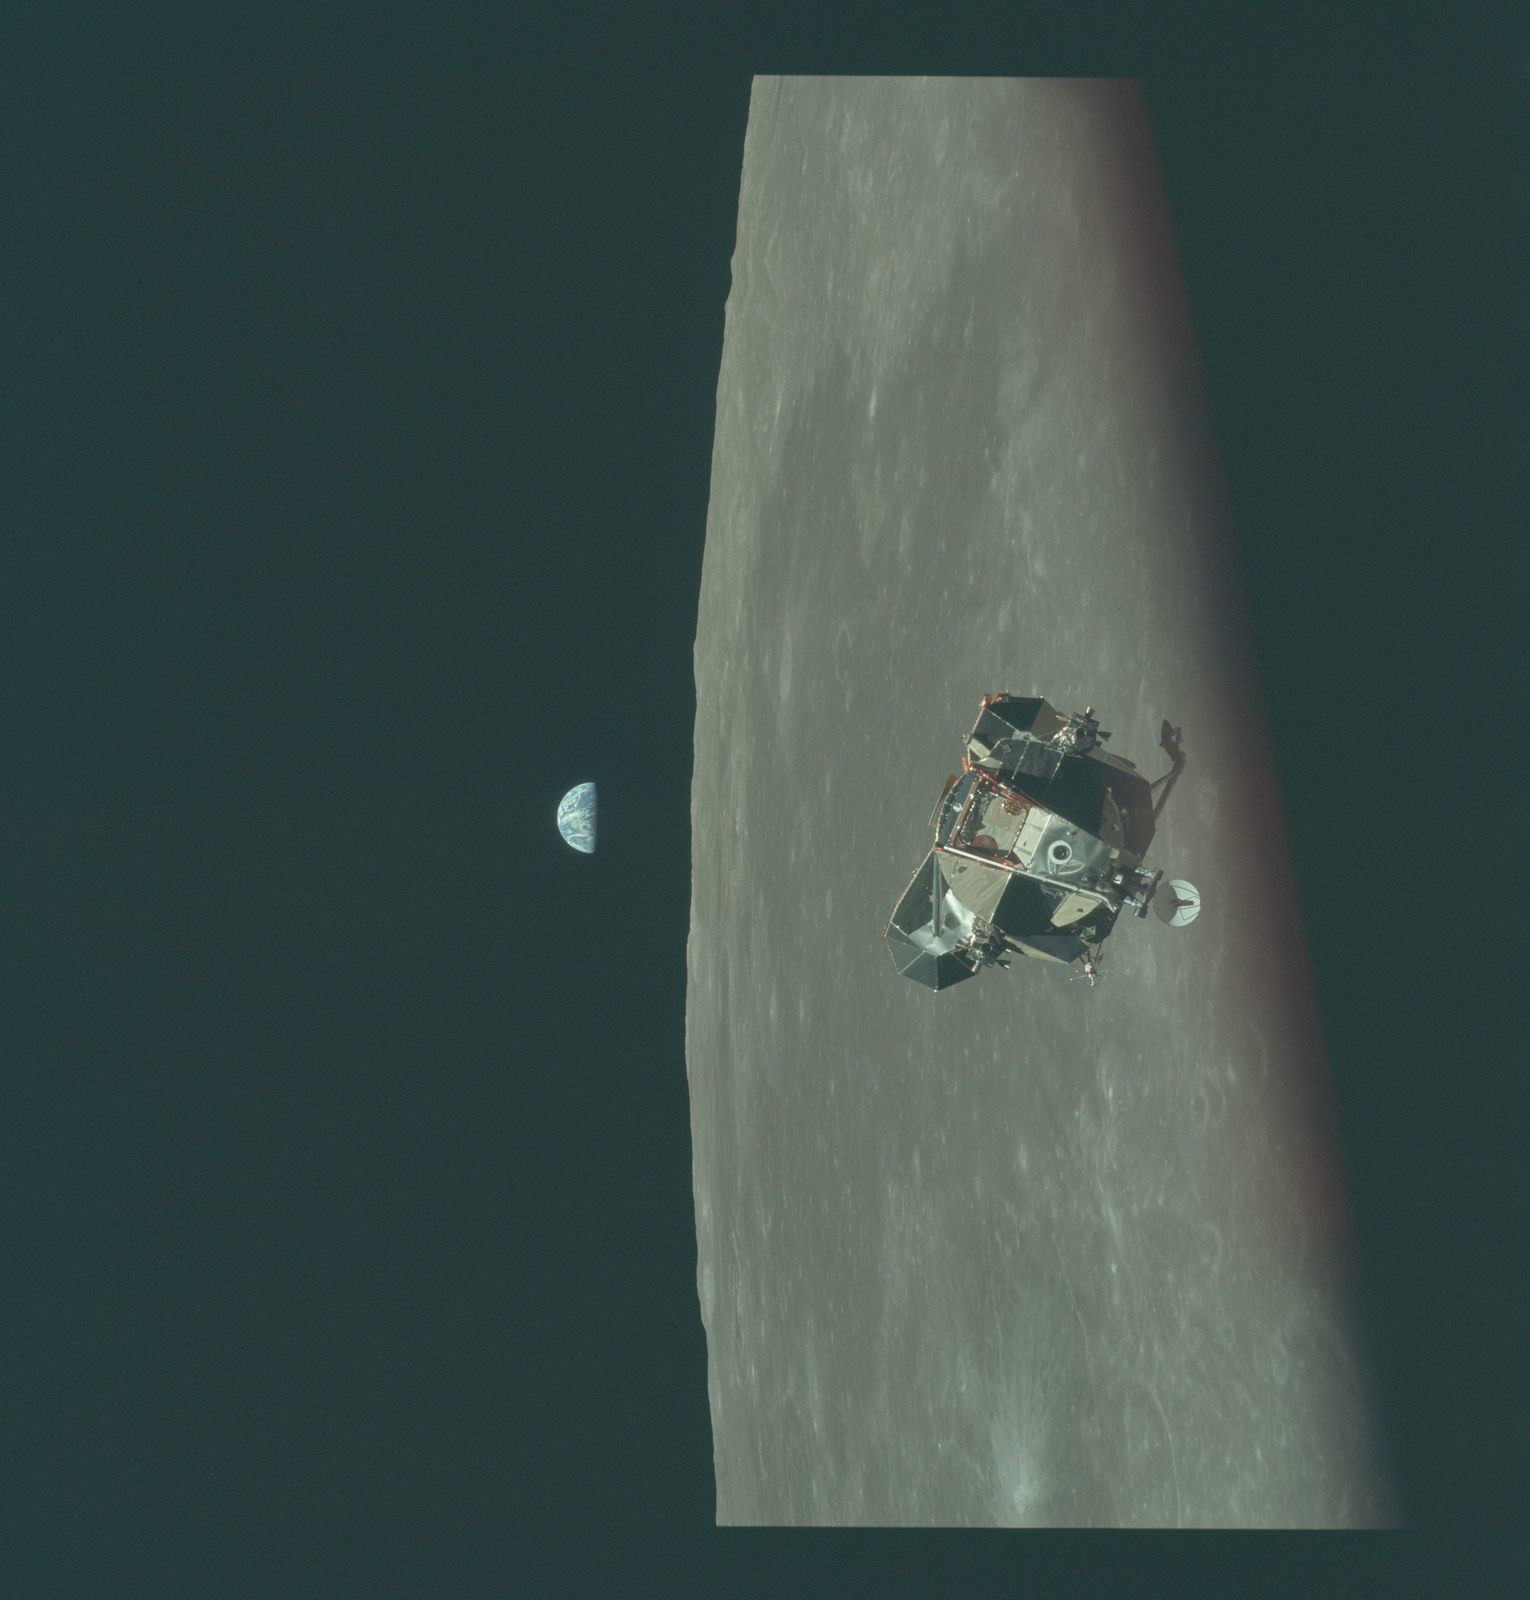 AS11-44-6641 - Apollo 11 - Apollo 11 Mission image - View of Moon limb and Lunar Module during ascent, Mare Smythii, Earth on horizon